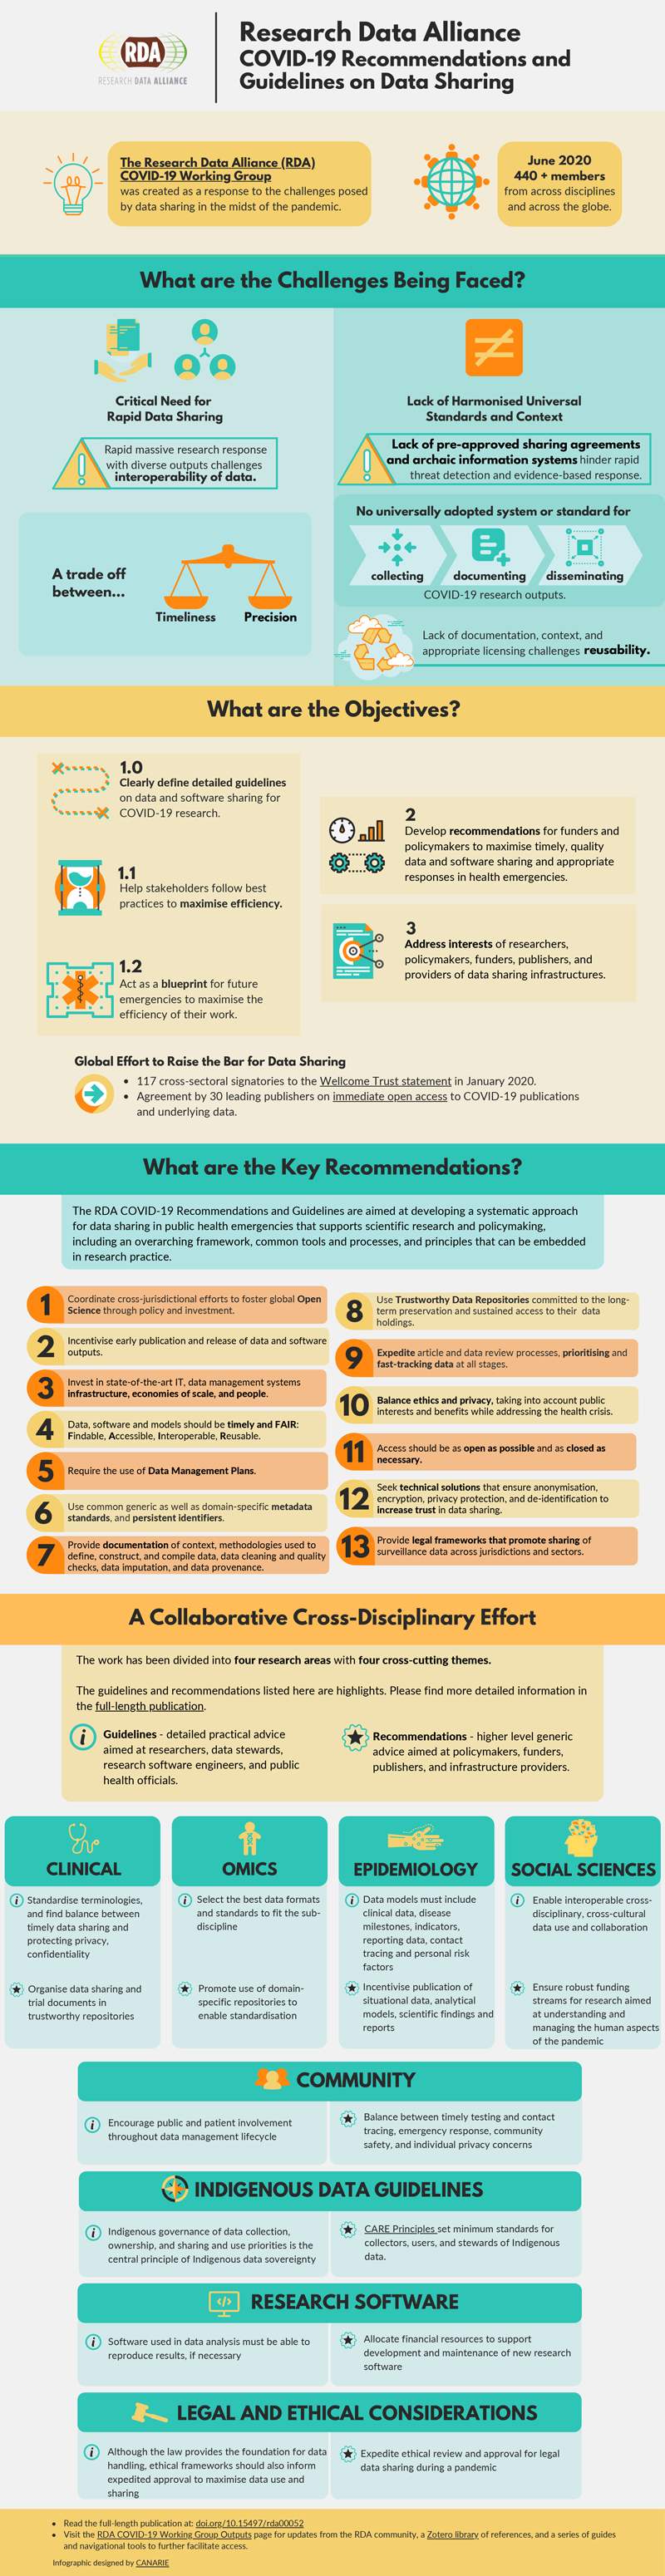 RDA-COVID-19 Recommendations and Guidelines for Data Sharing - Infographic